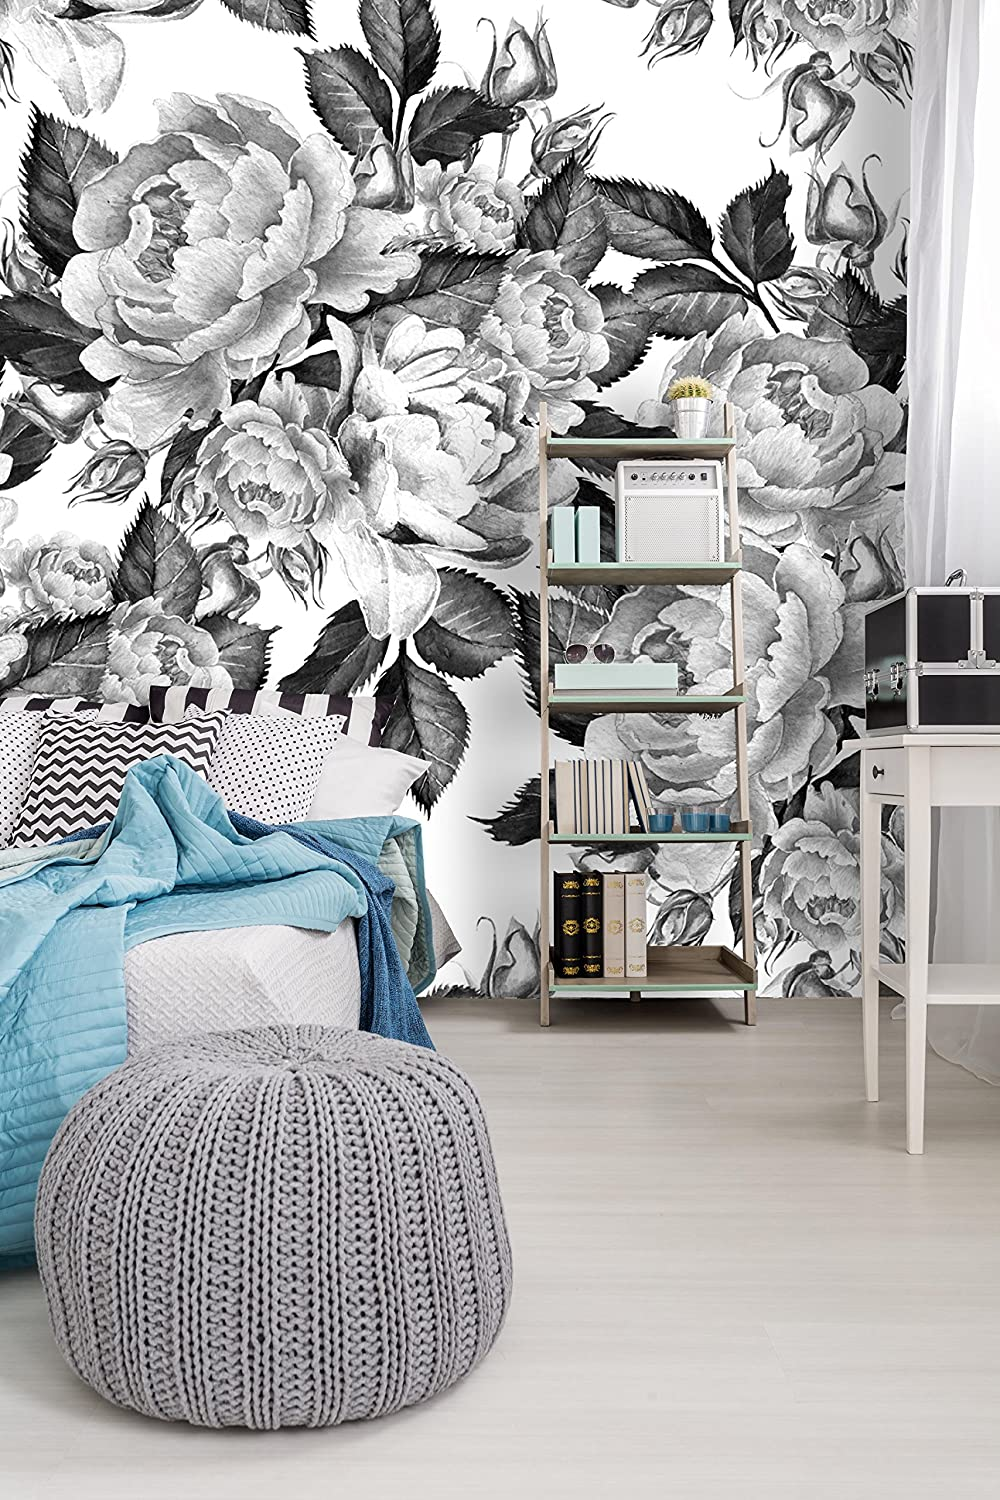 Amazon Com Removable Wallpaper Mural Peel Stick Peonies Flowers